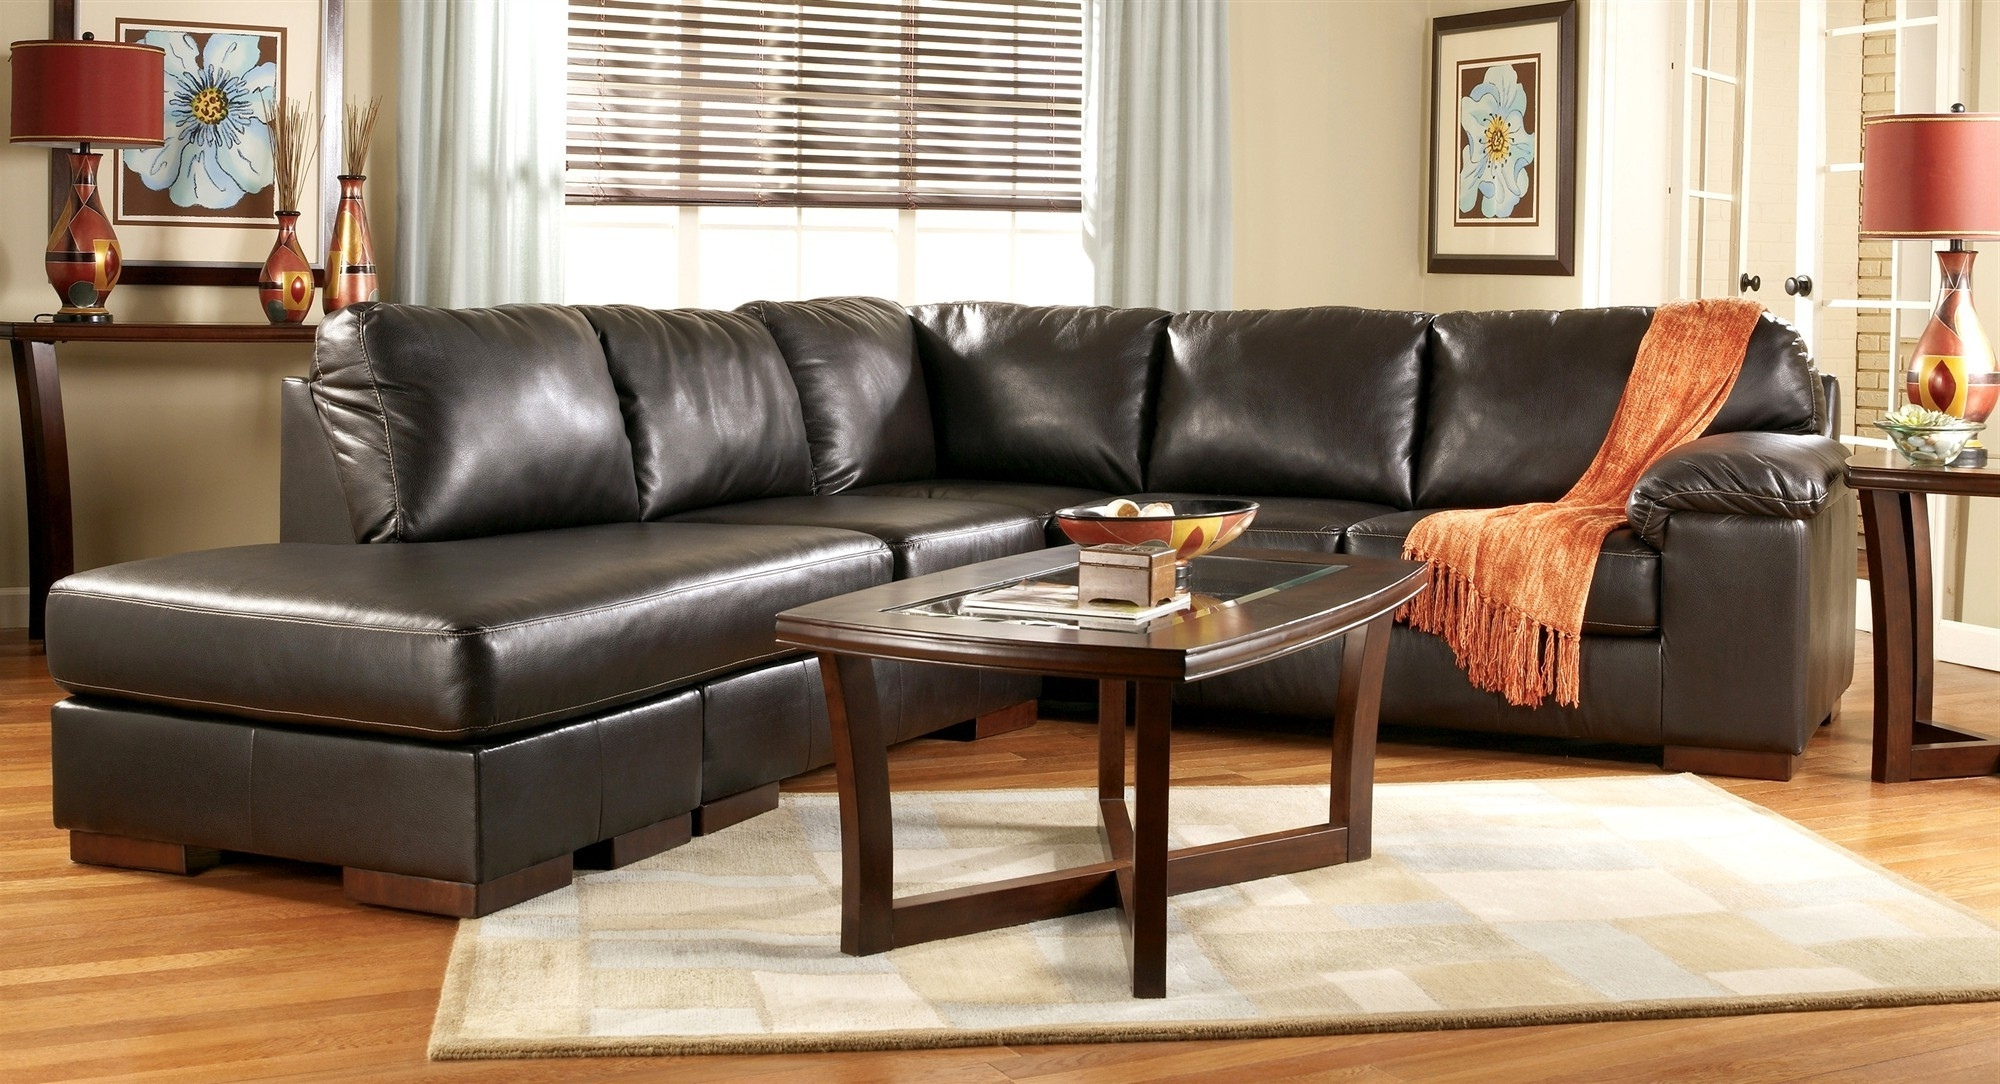 Fashionable Faux Leather Sectional Sofas Intended For Faux Leather Sectional Sofa Ashley Simmons Bonded Leather (View 12 of 20)